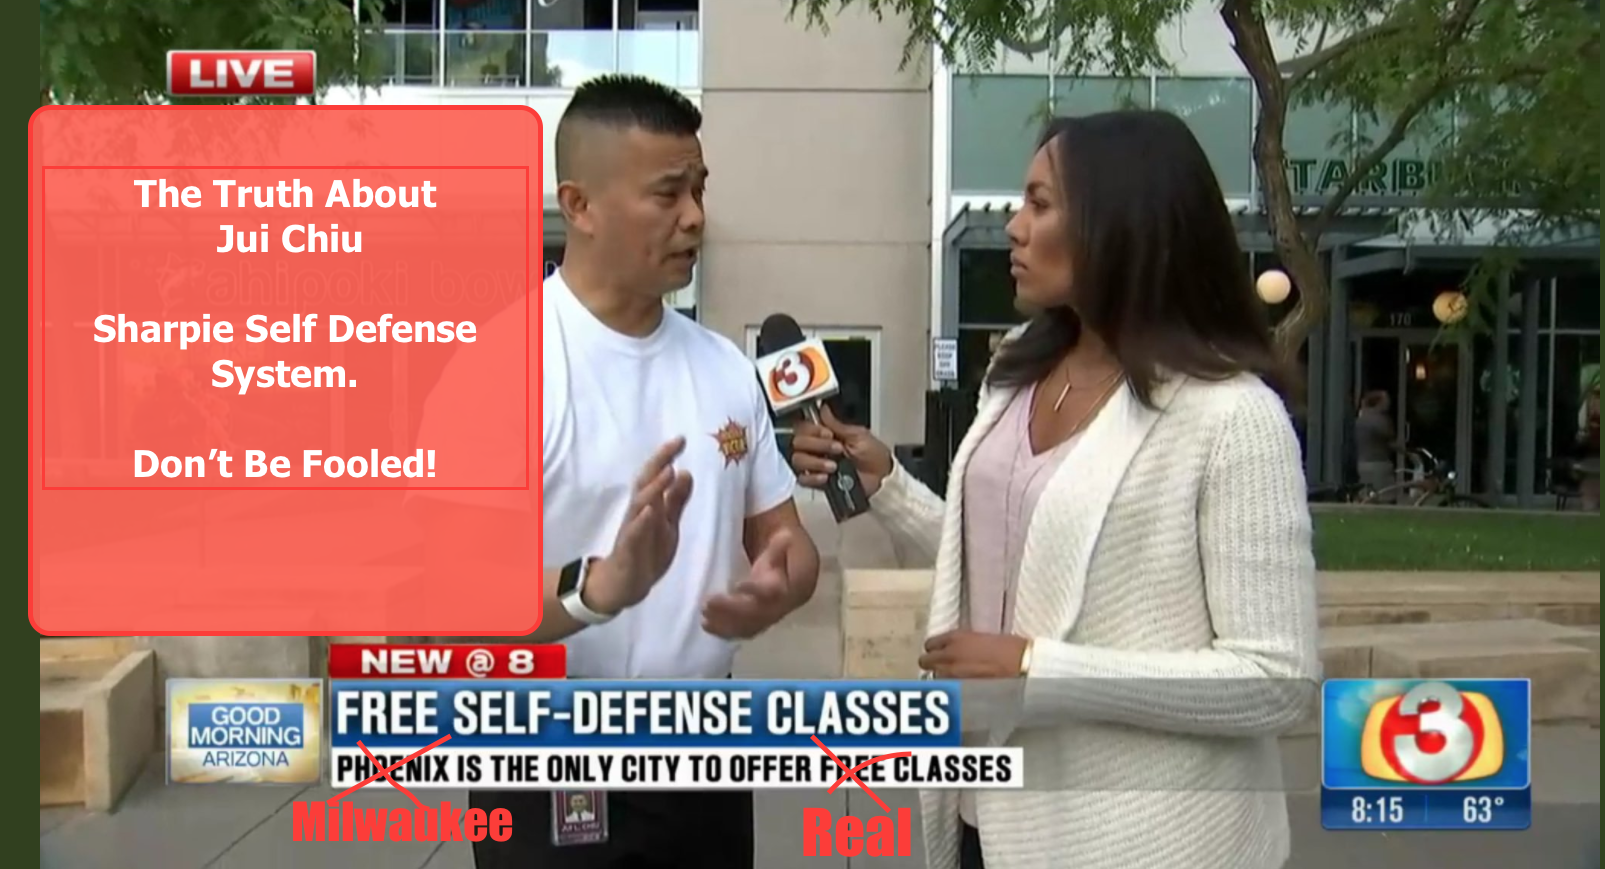 Arizona self defense expert could be providing false security.